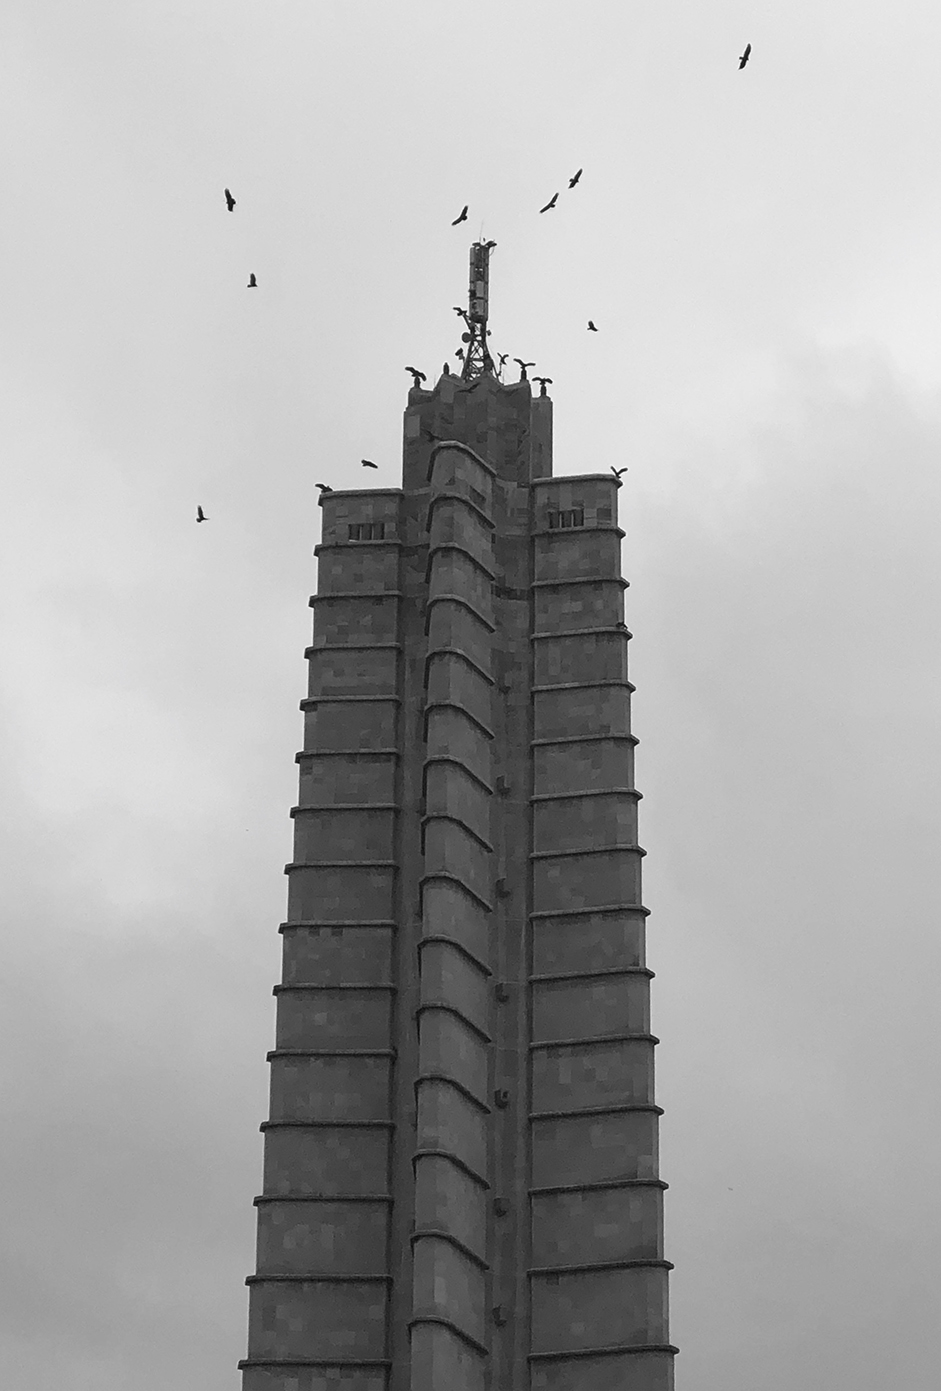 Havana Revolutionary Tower